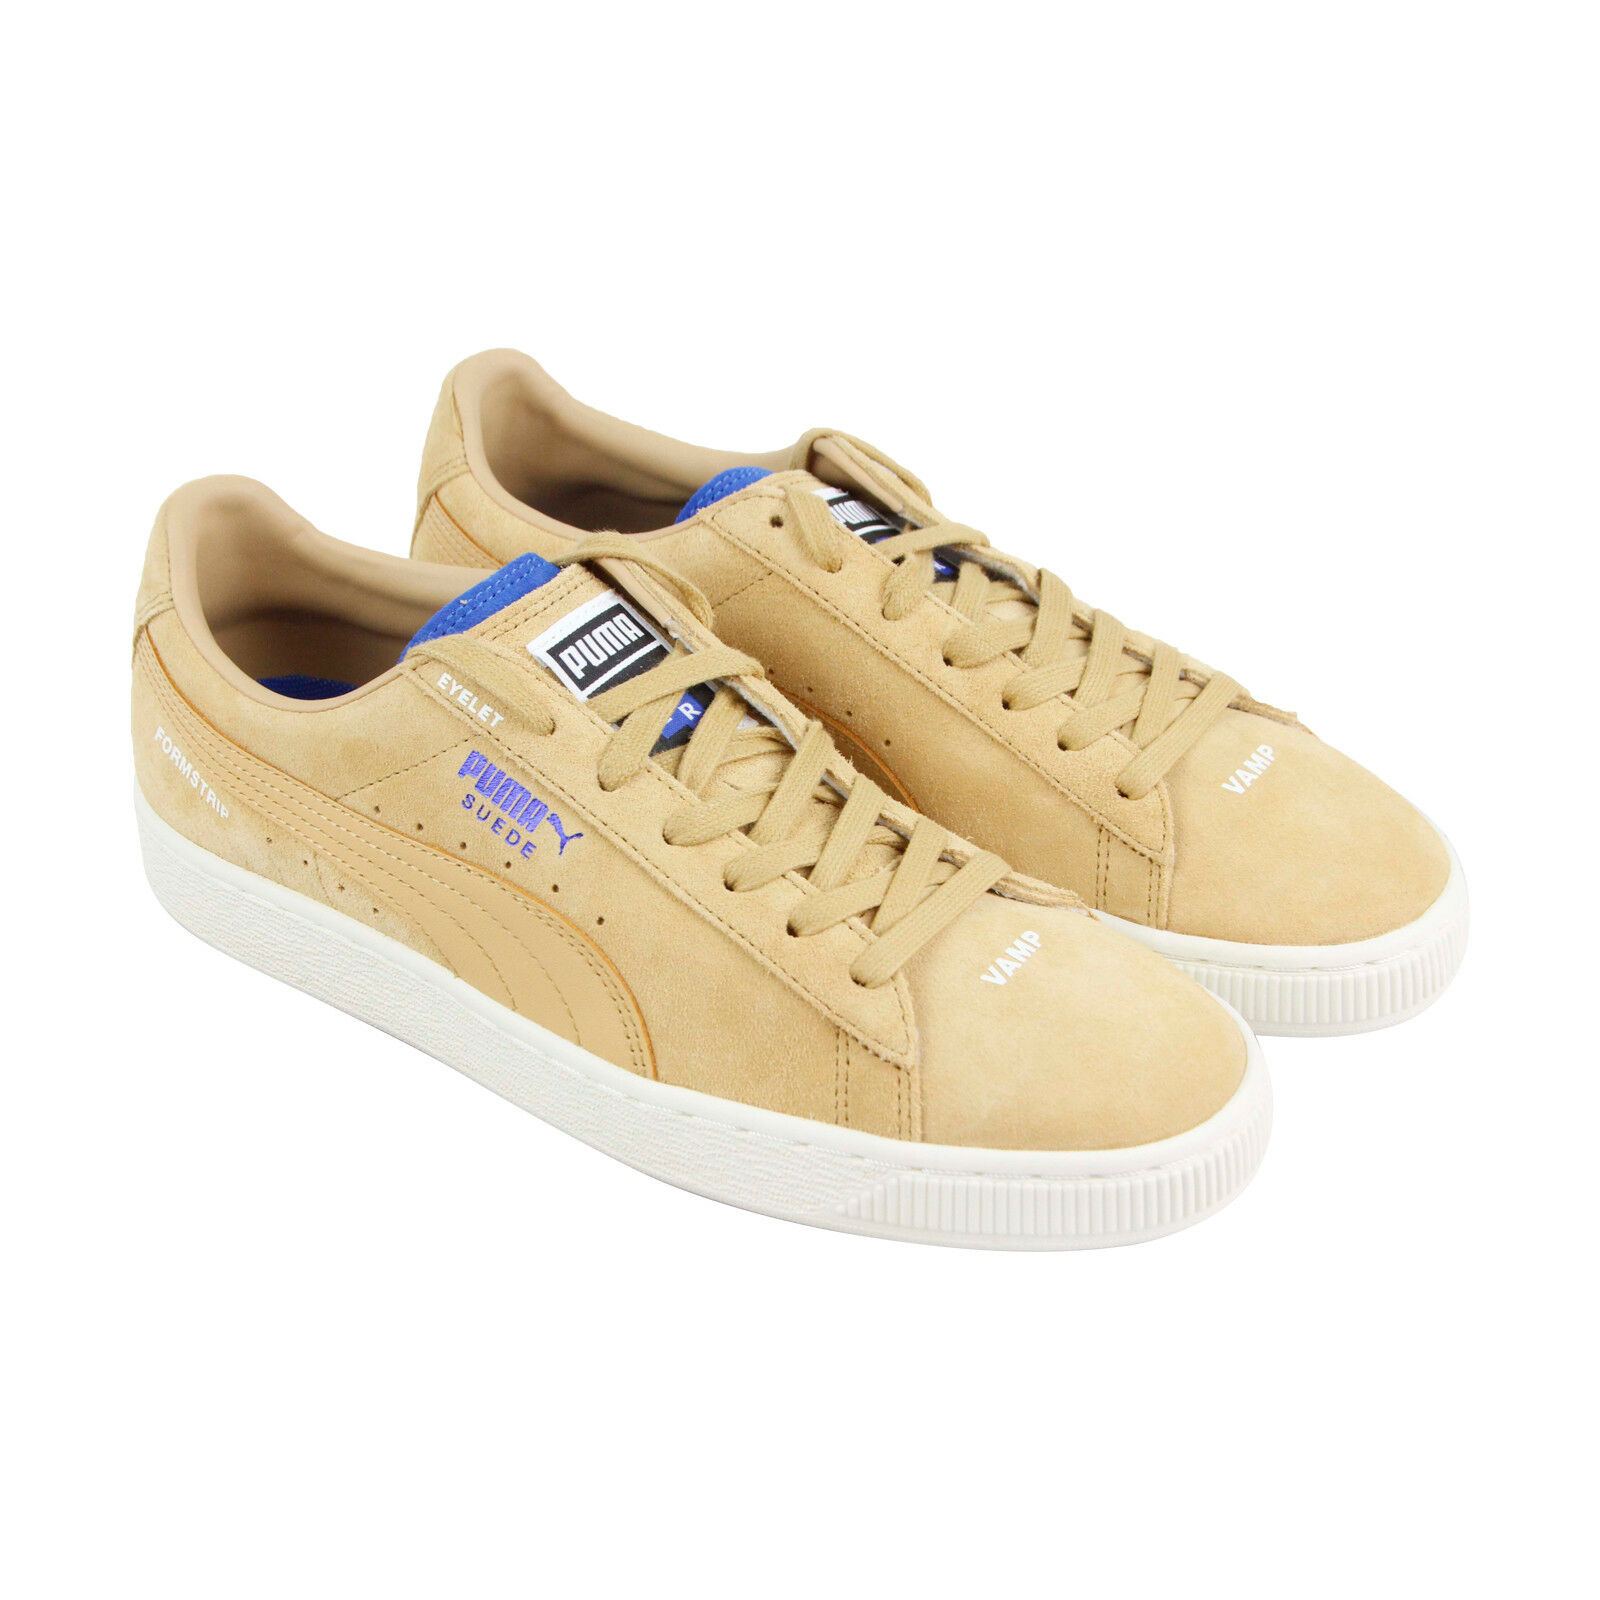 Puma Suede Ader Error Mens Tan Suede Lace Up Sneakers shoes